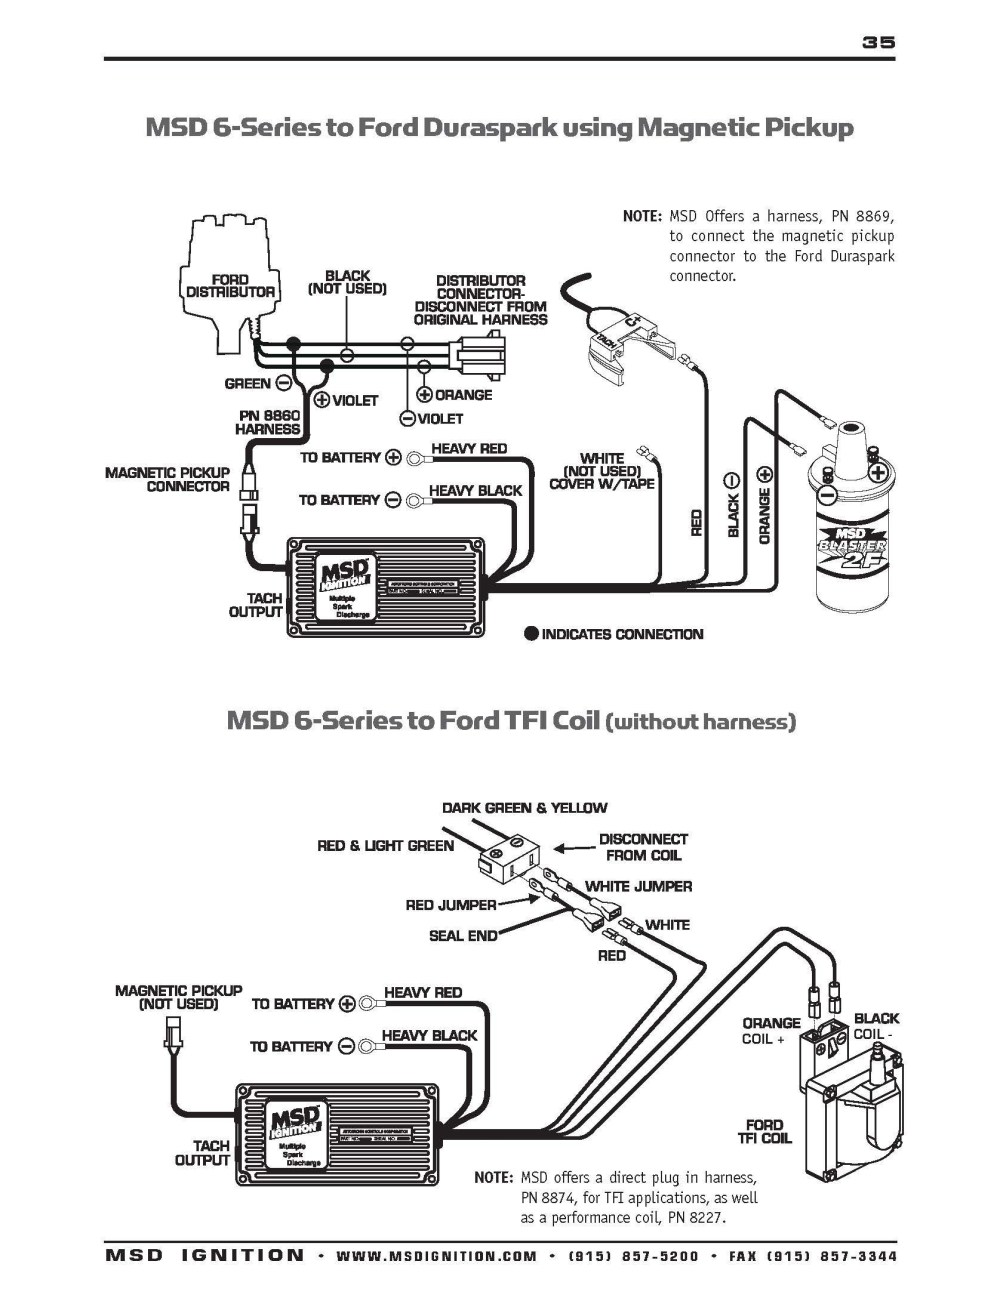 medium resolution of msd ford wiring diagrams 94 database wiring diagram msd 8350 wiring diagram ford